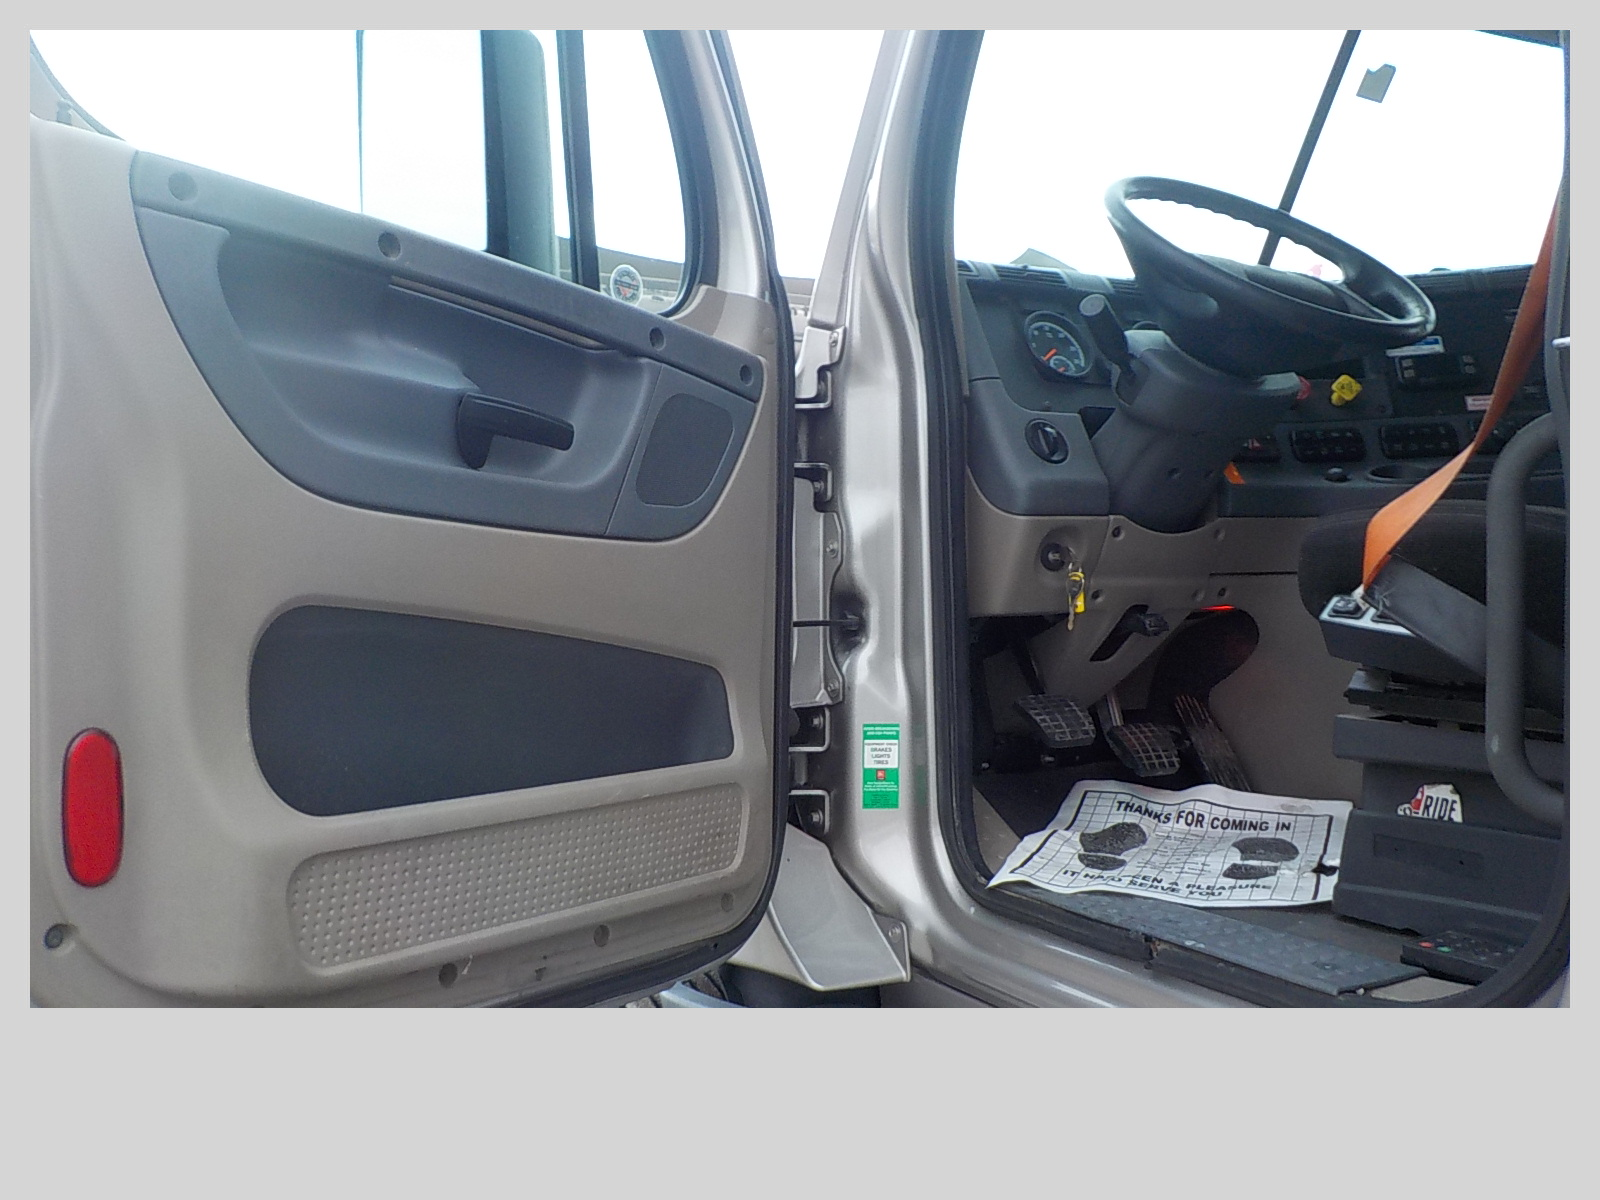 2015 Freightliner Cascadia for sale-59199662